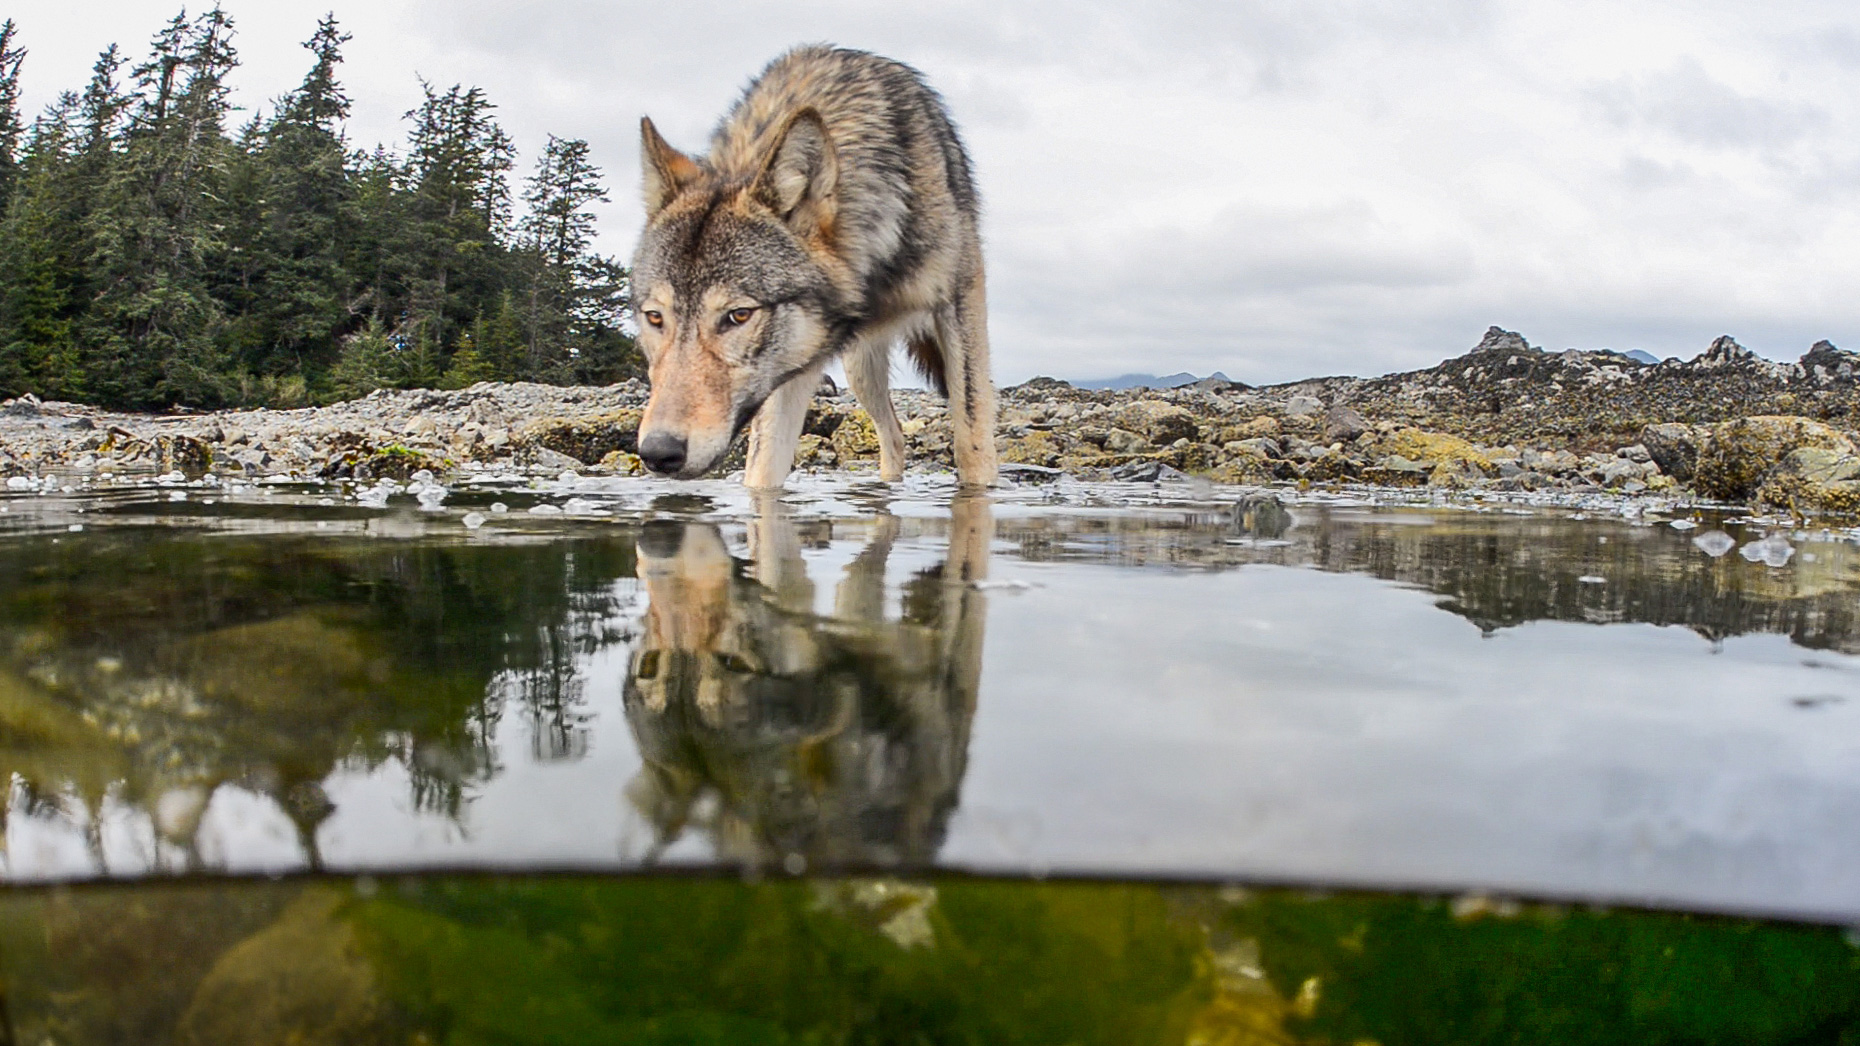 Vancouver Island gray wolves eat the bounty from the sea, particularly salmon. Photo by Tavish Campbell